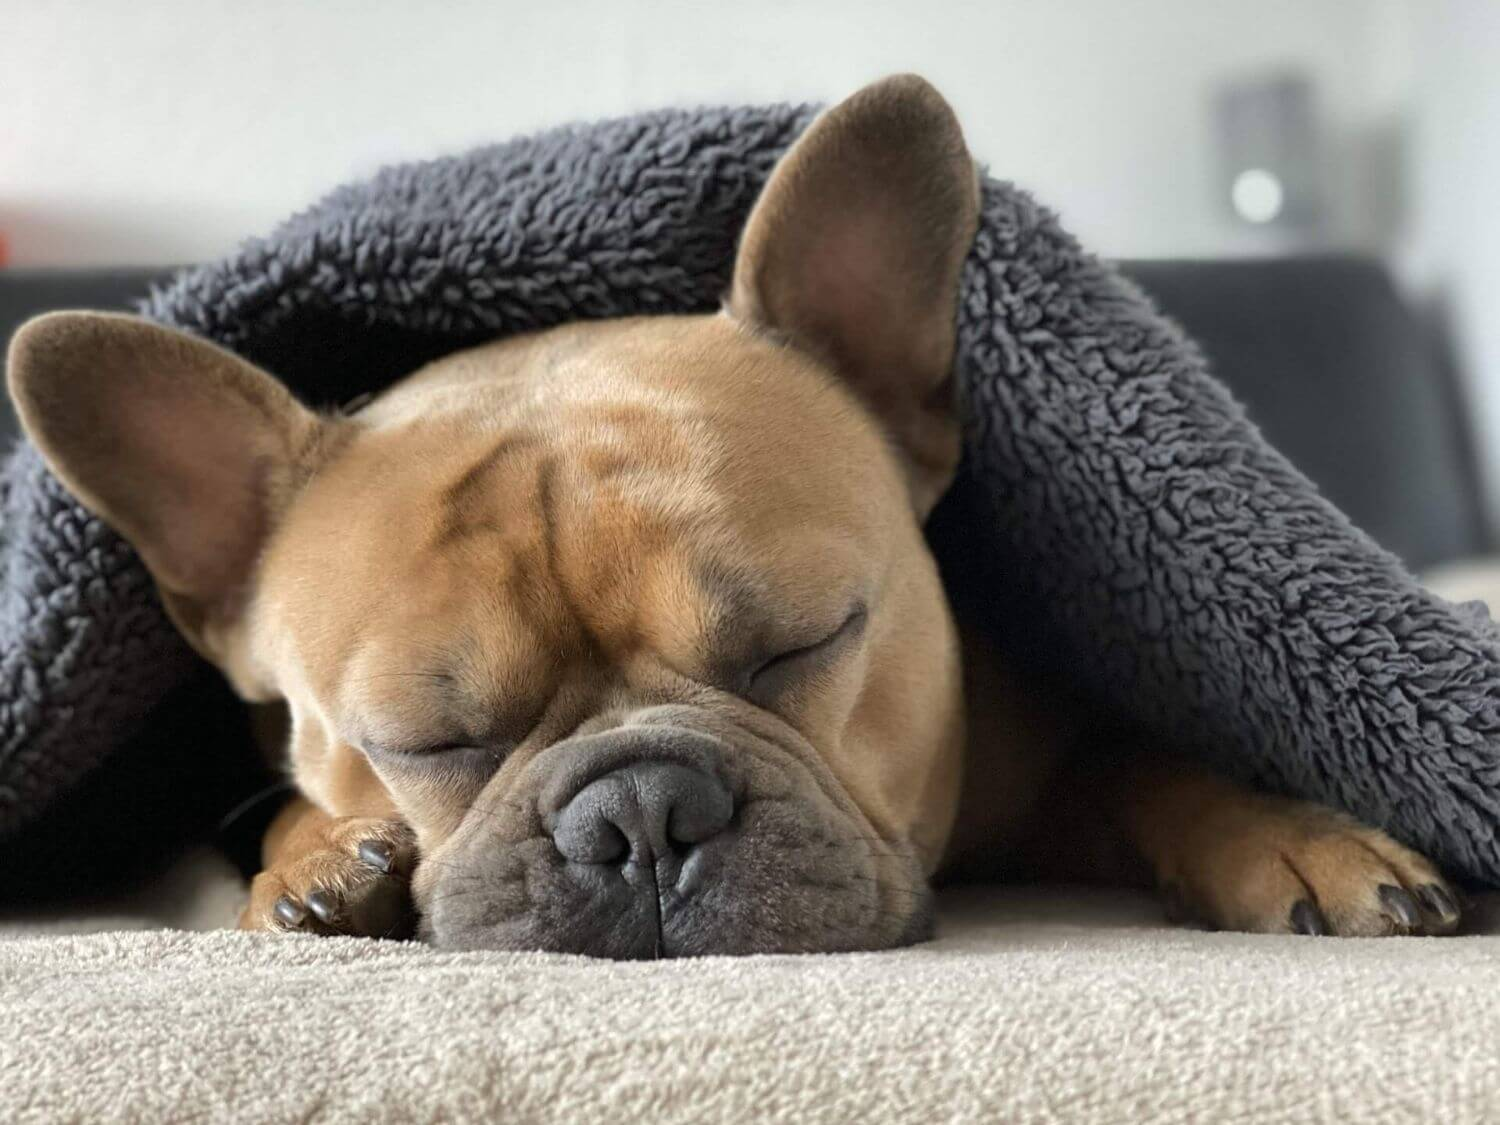 Sleep in dogs 4 most common disorders